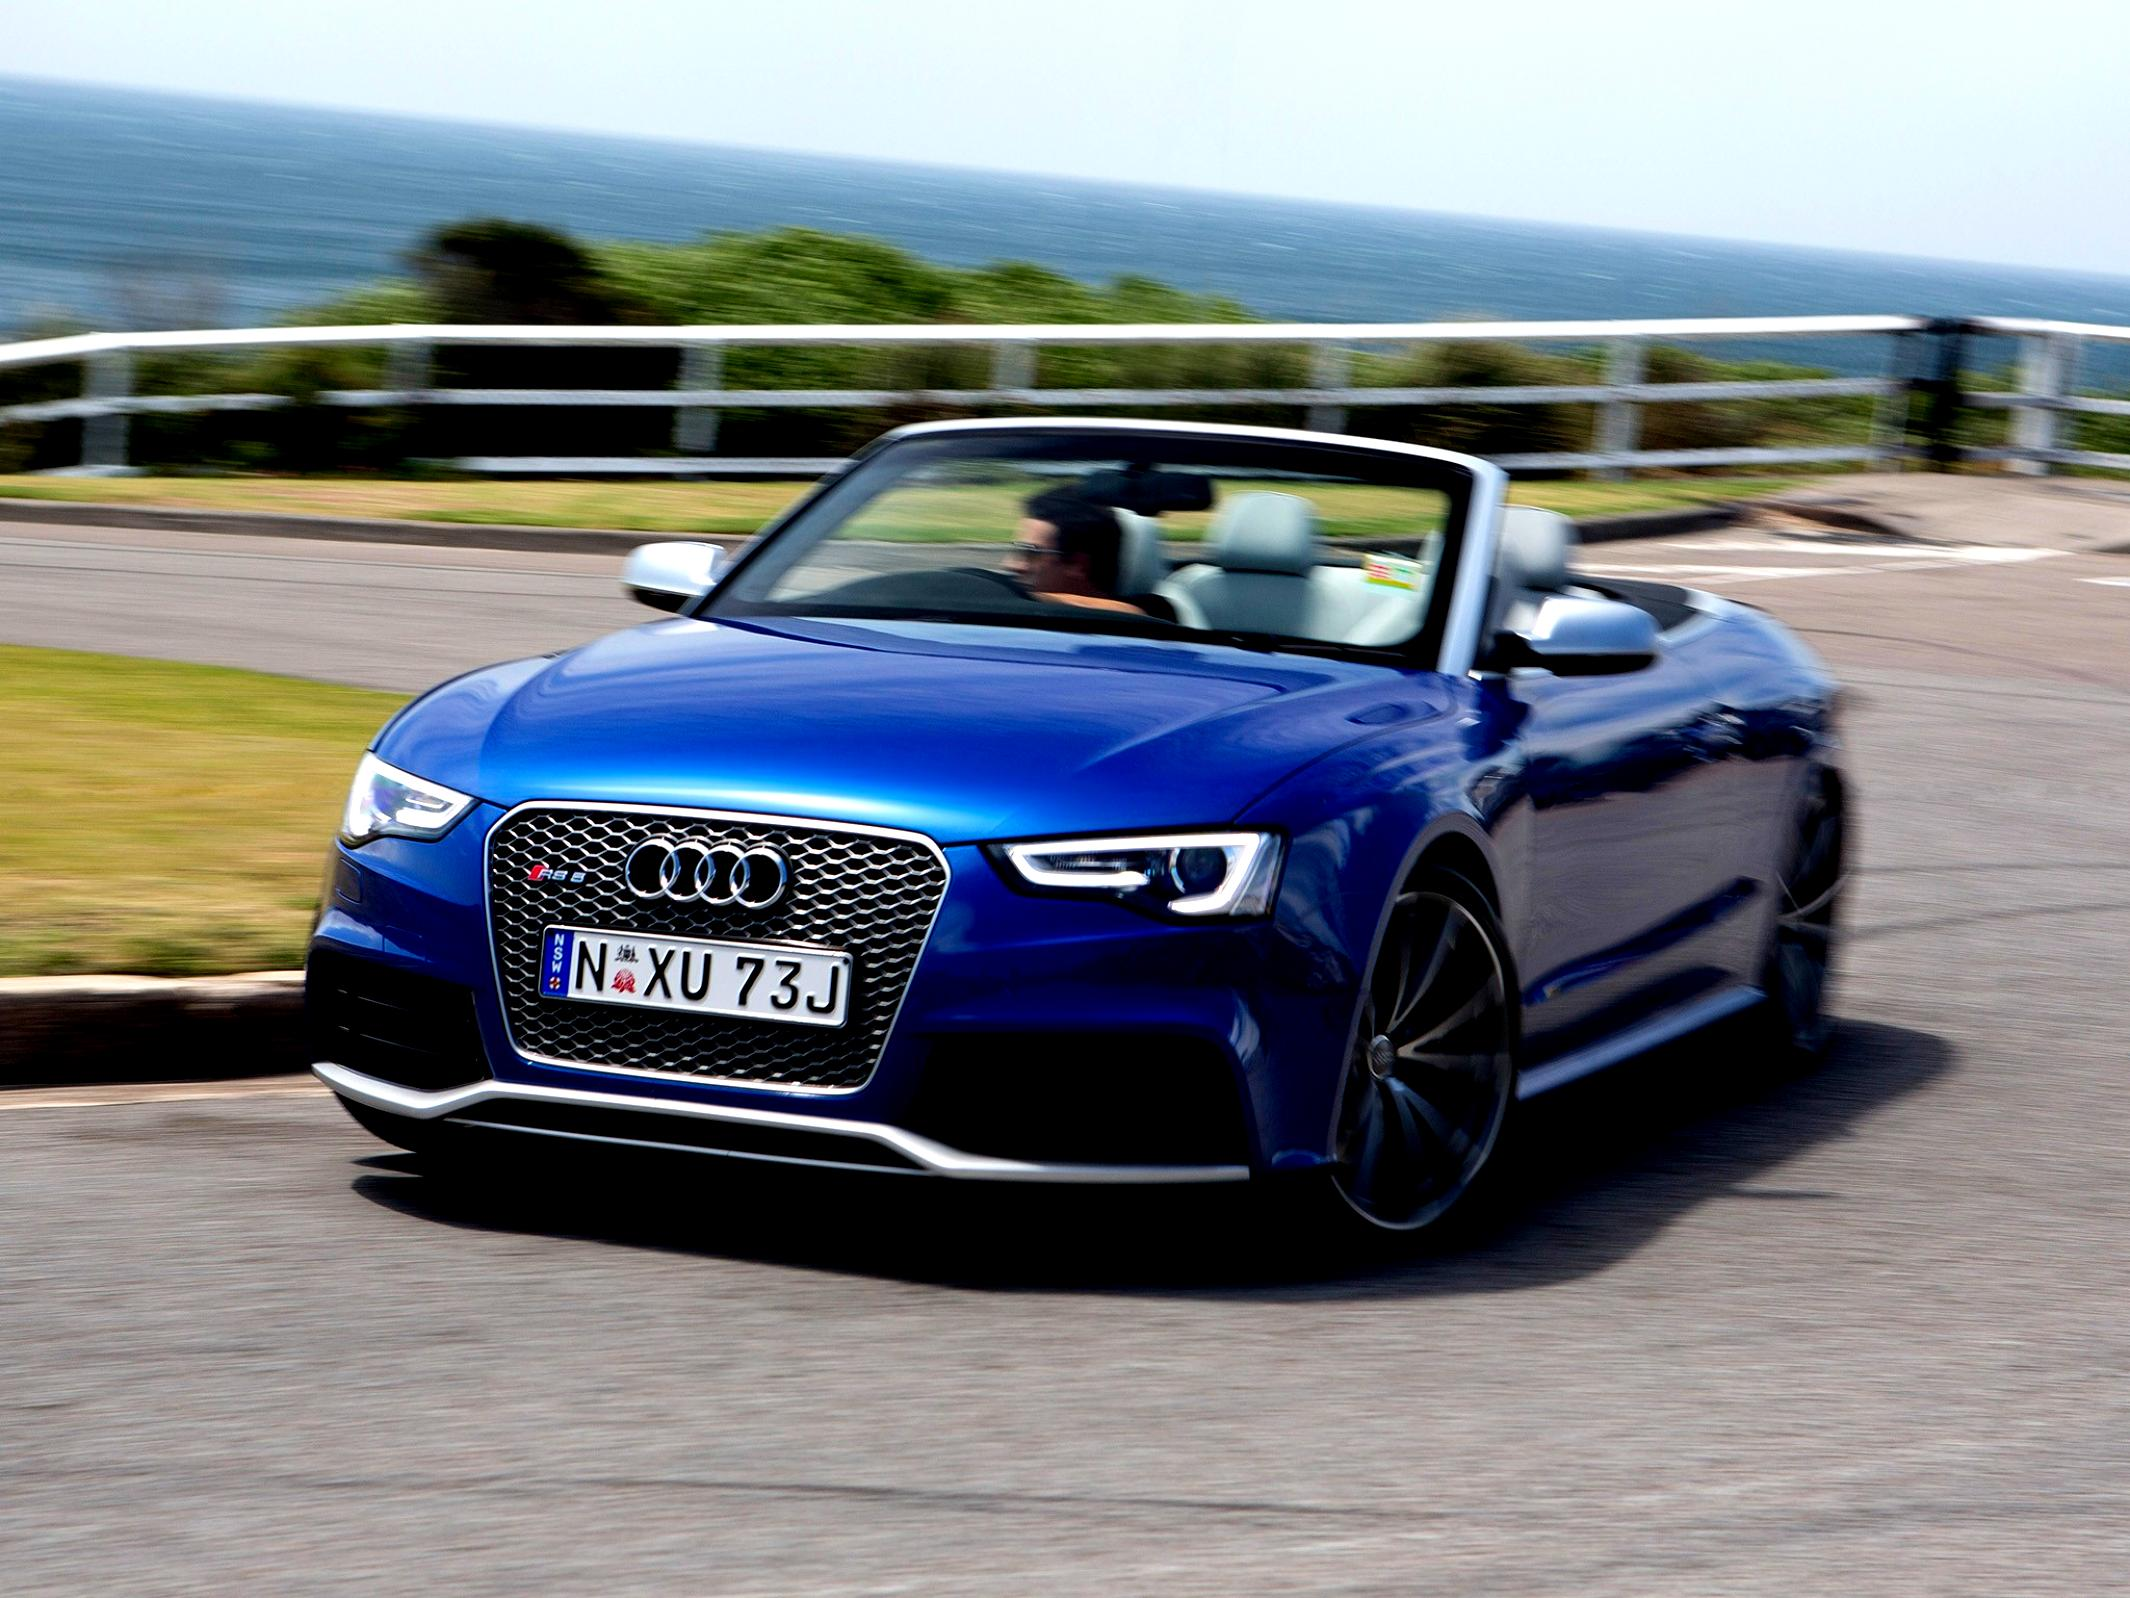 Audi RS5 Cabriolet 2013 #51